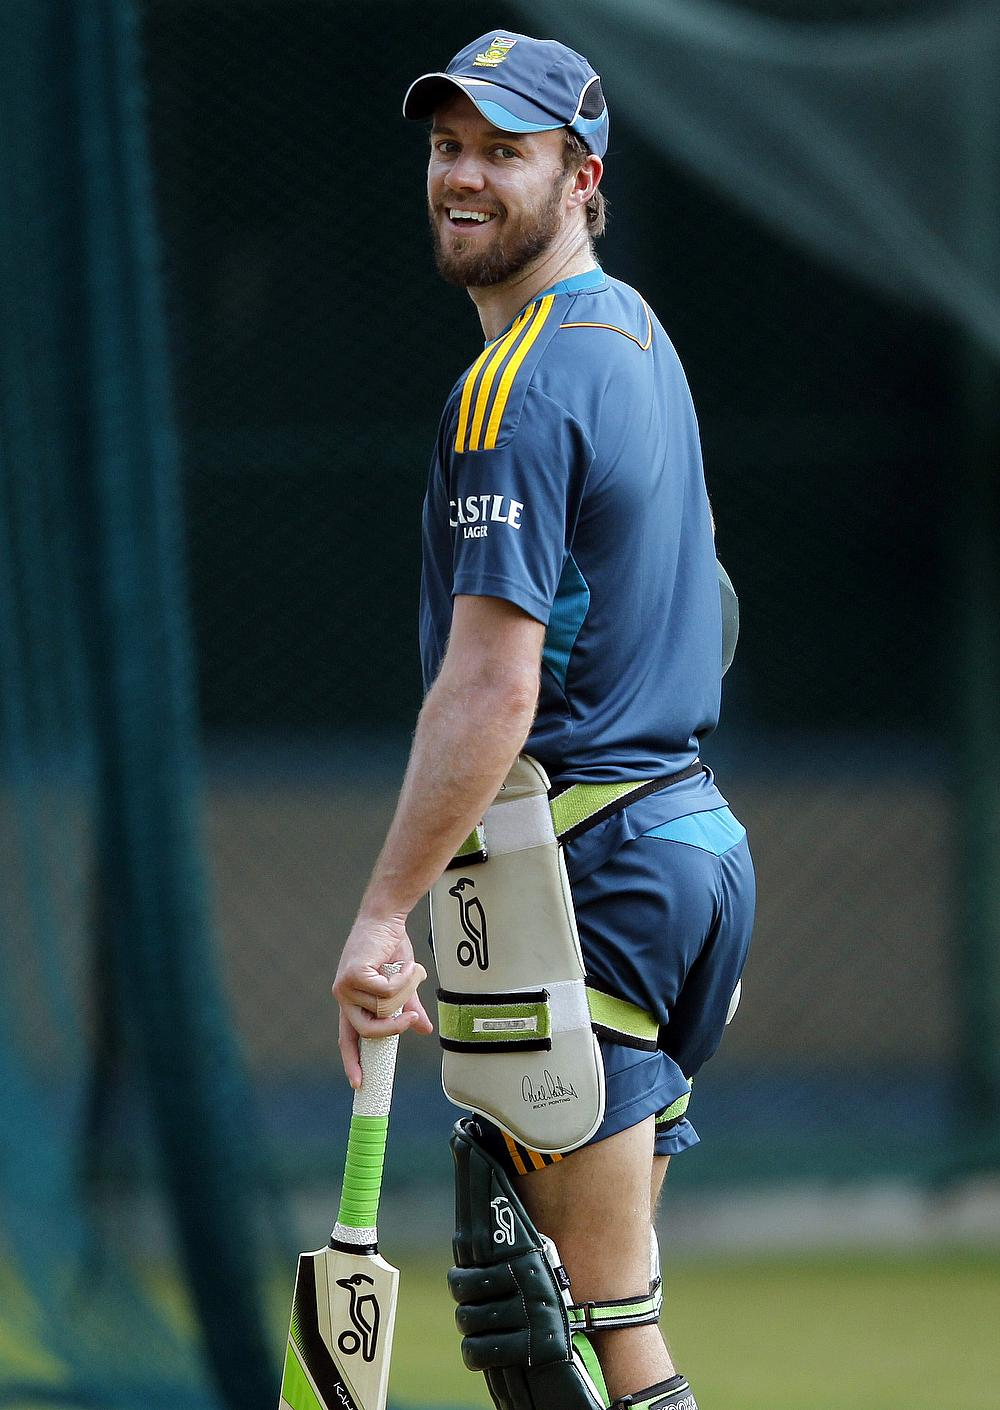 AB de Villiers will open the batting in T20Is - Faf du Plessis